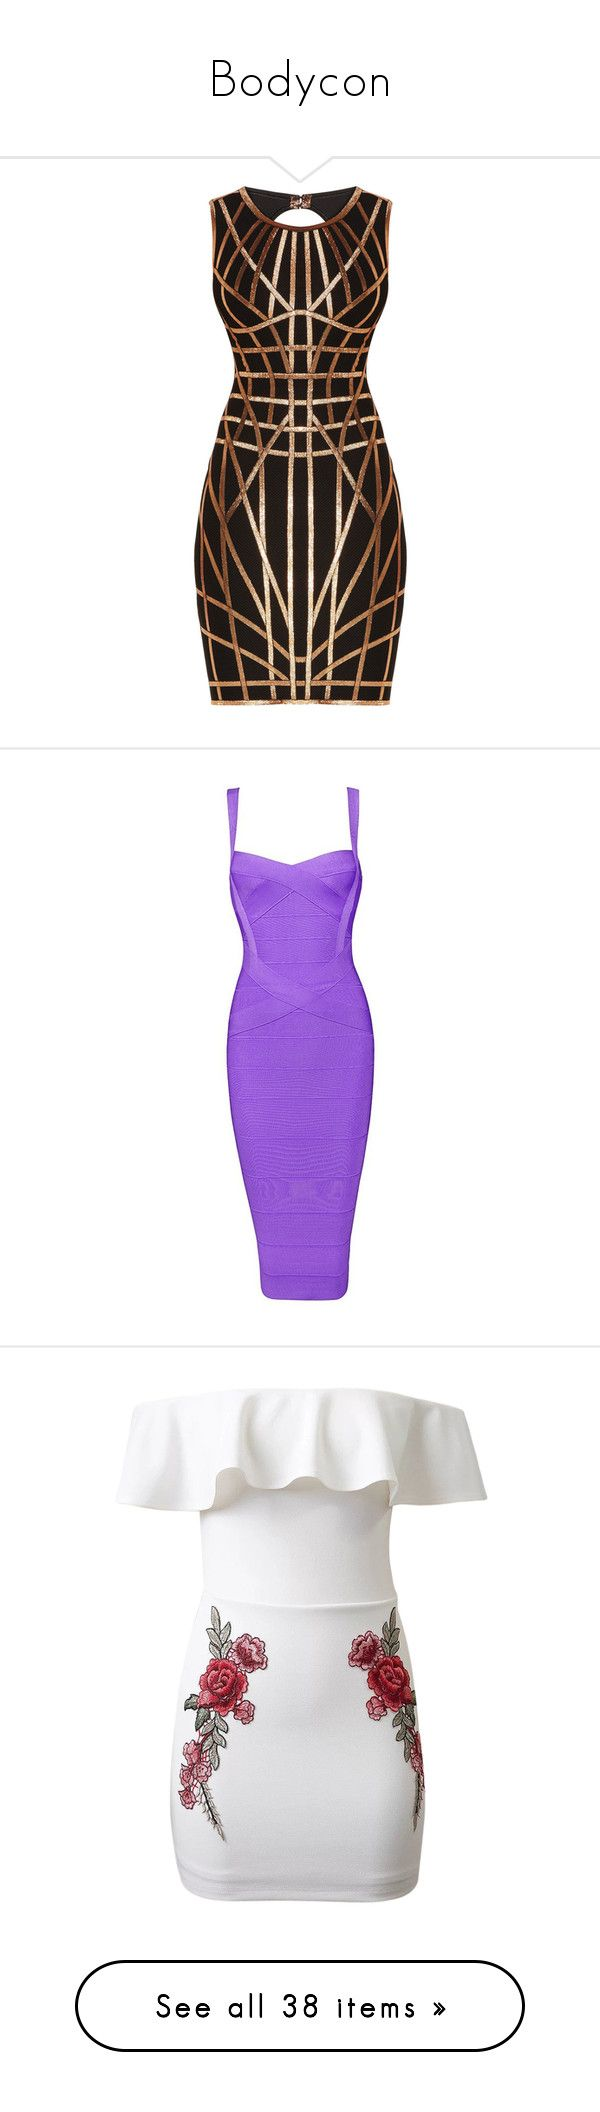 """""""Bodycon"""" by mimzyel on Polyvore featuring dresses, herve leger, caged bodycon dress, metallic cocktail dress, herve leger dress, sleeveless bodycon dress, sleeveless dress, midi party dresses, purple bandage dress and bodycon dress"""